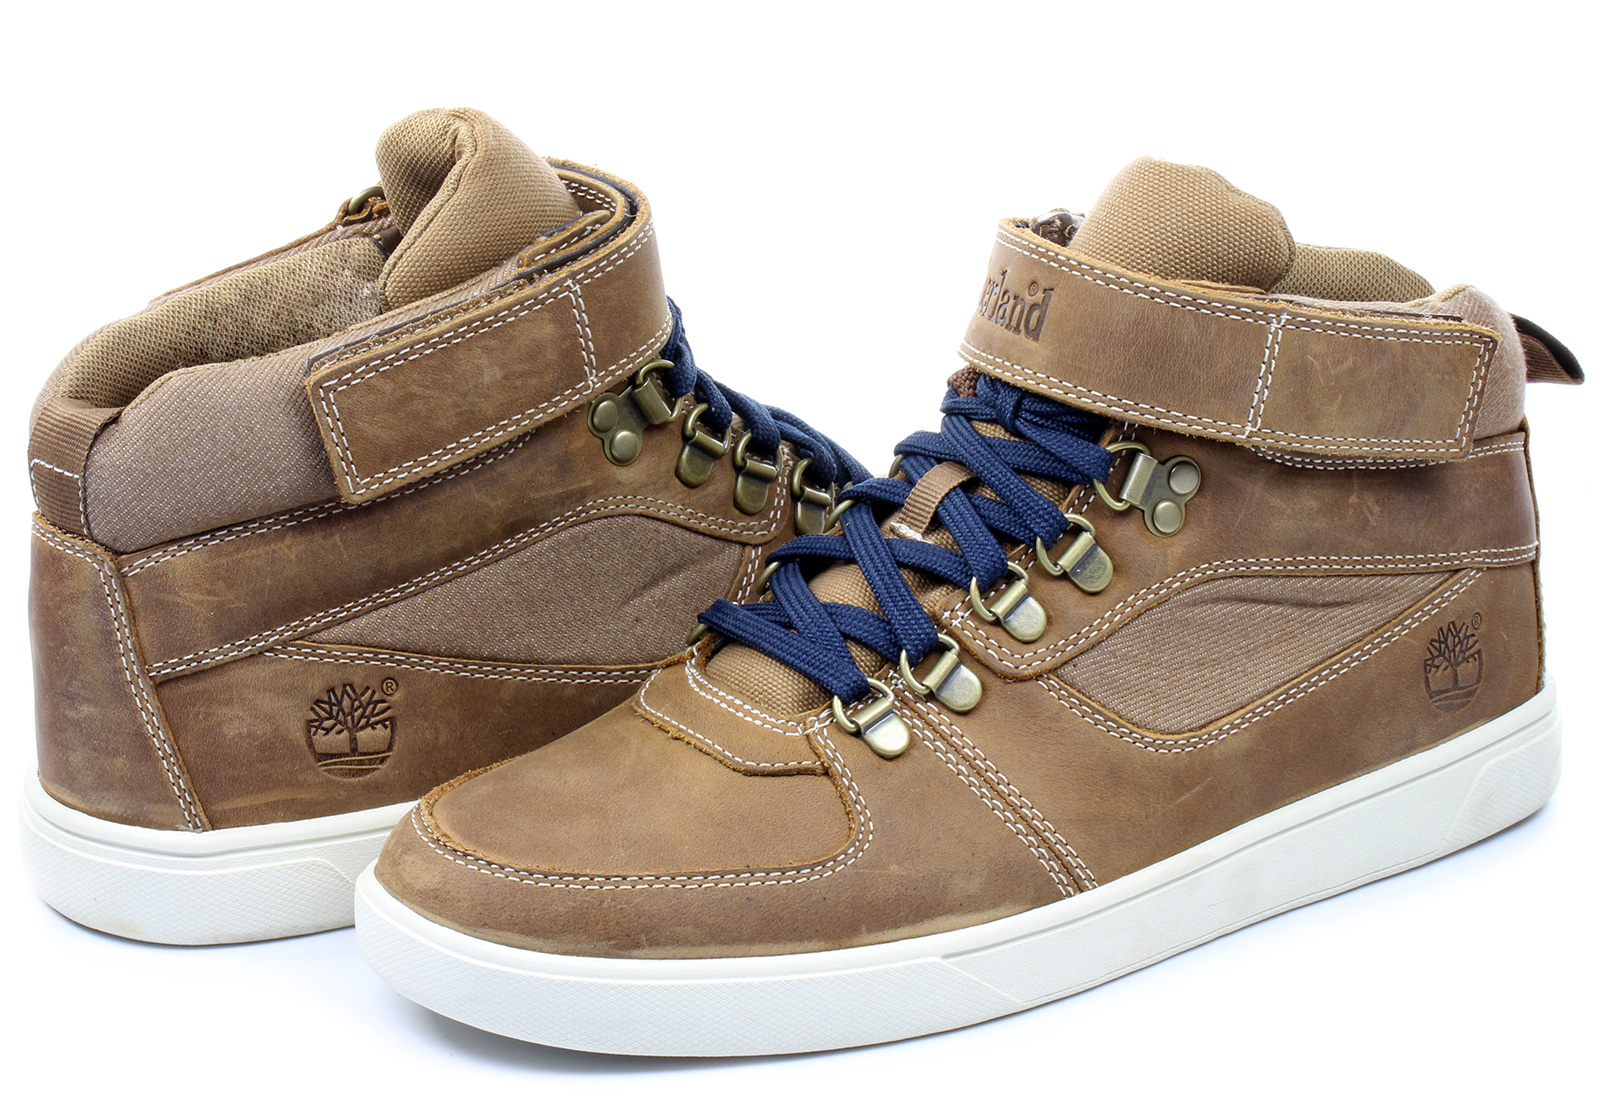 Timberland Shoes Groveton Hiker 6737A BRN Online shop for sneakers, shoes and boots